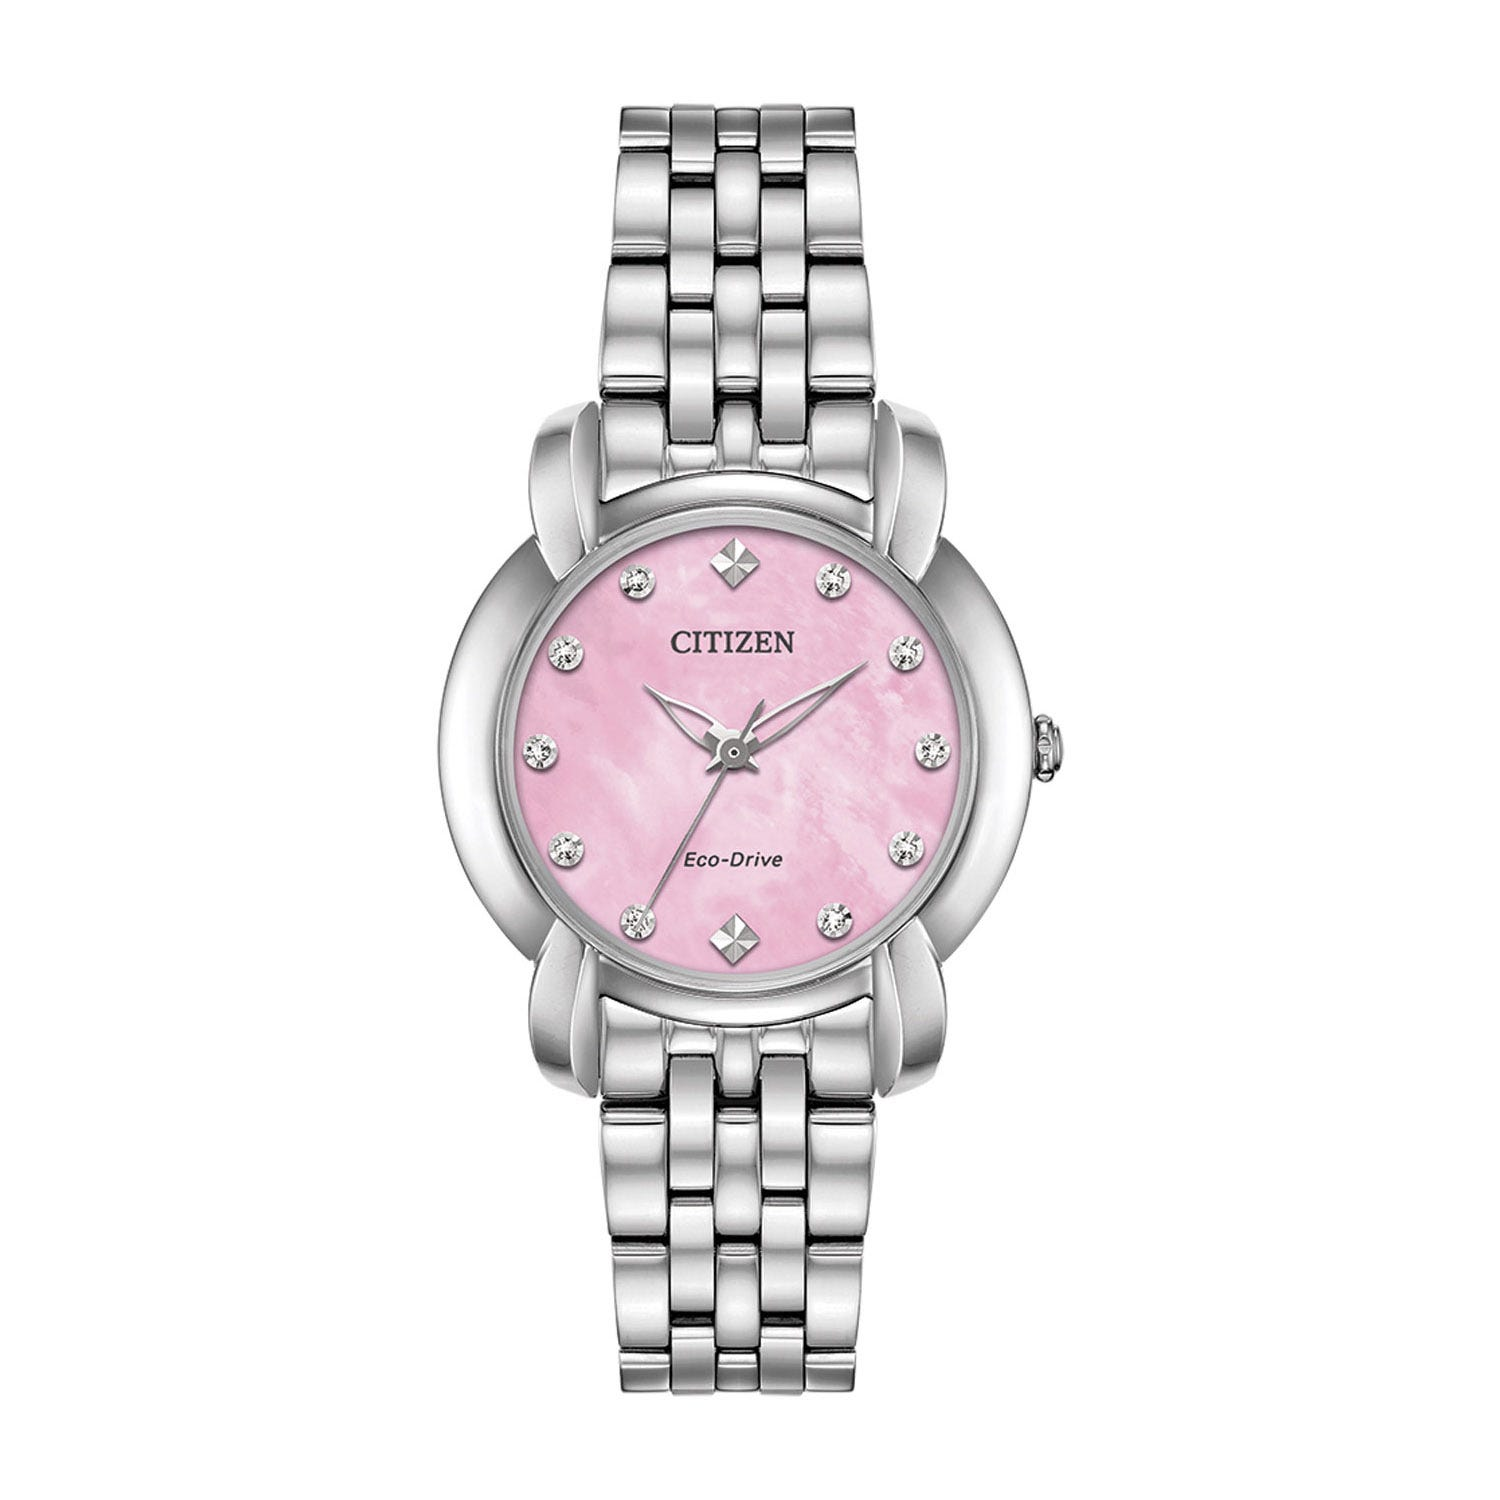 Citizen Eco-Drive Pink Pearl & Crystal 30mm Ladies' Watch